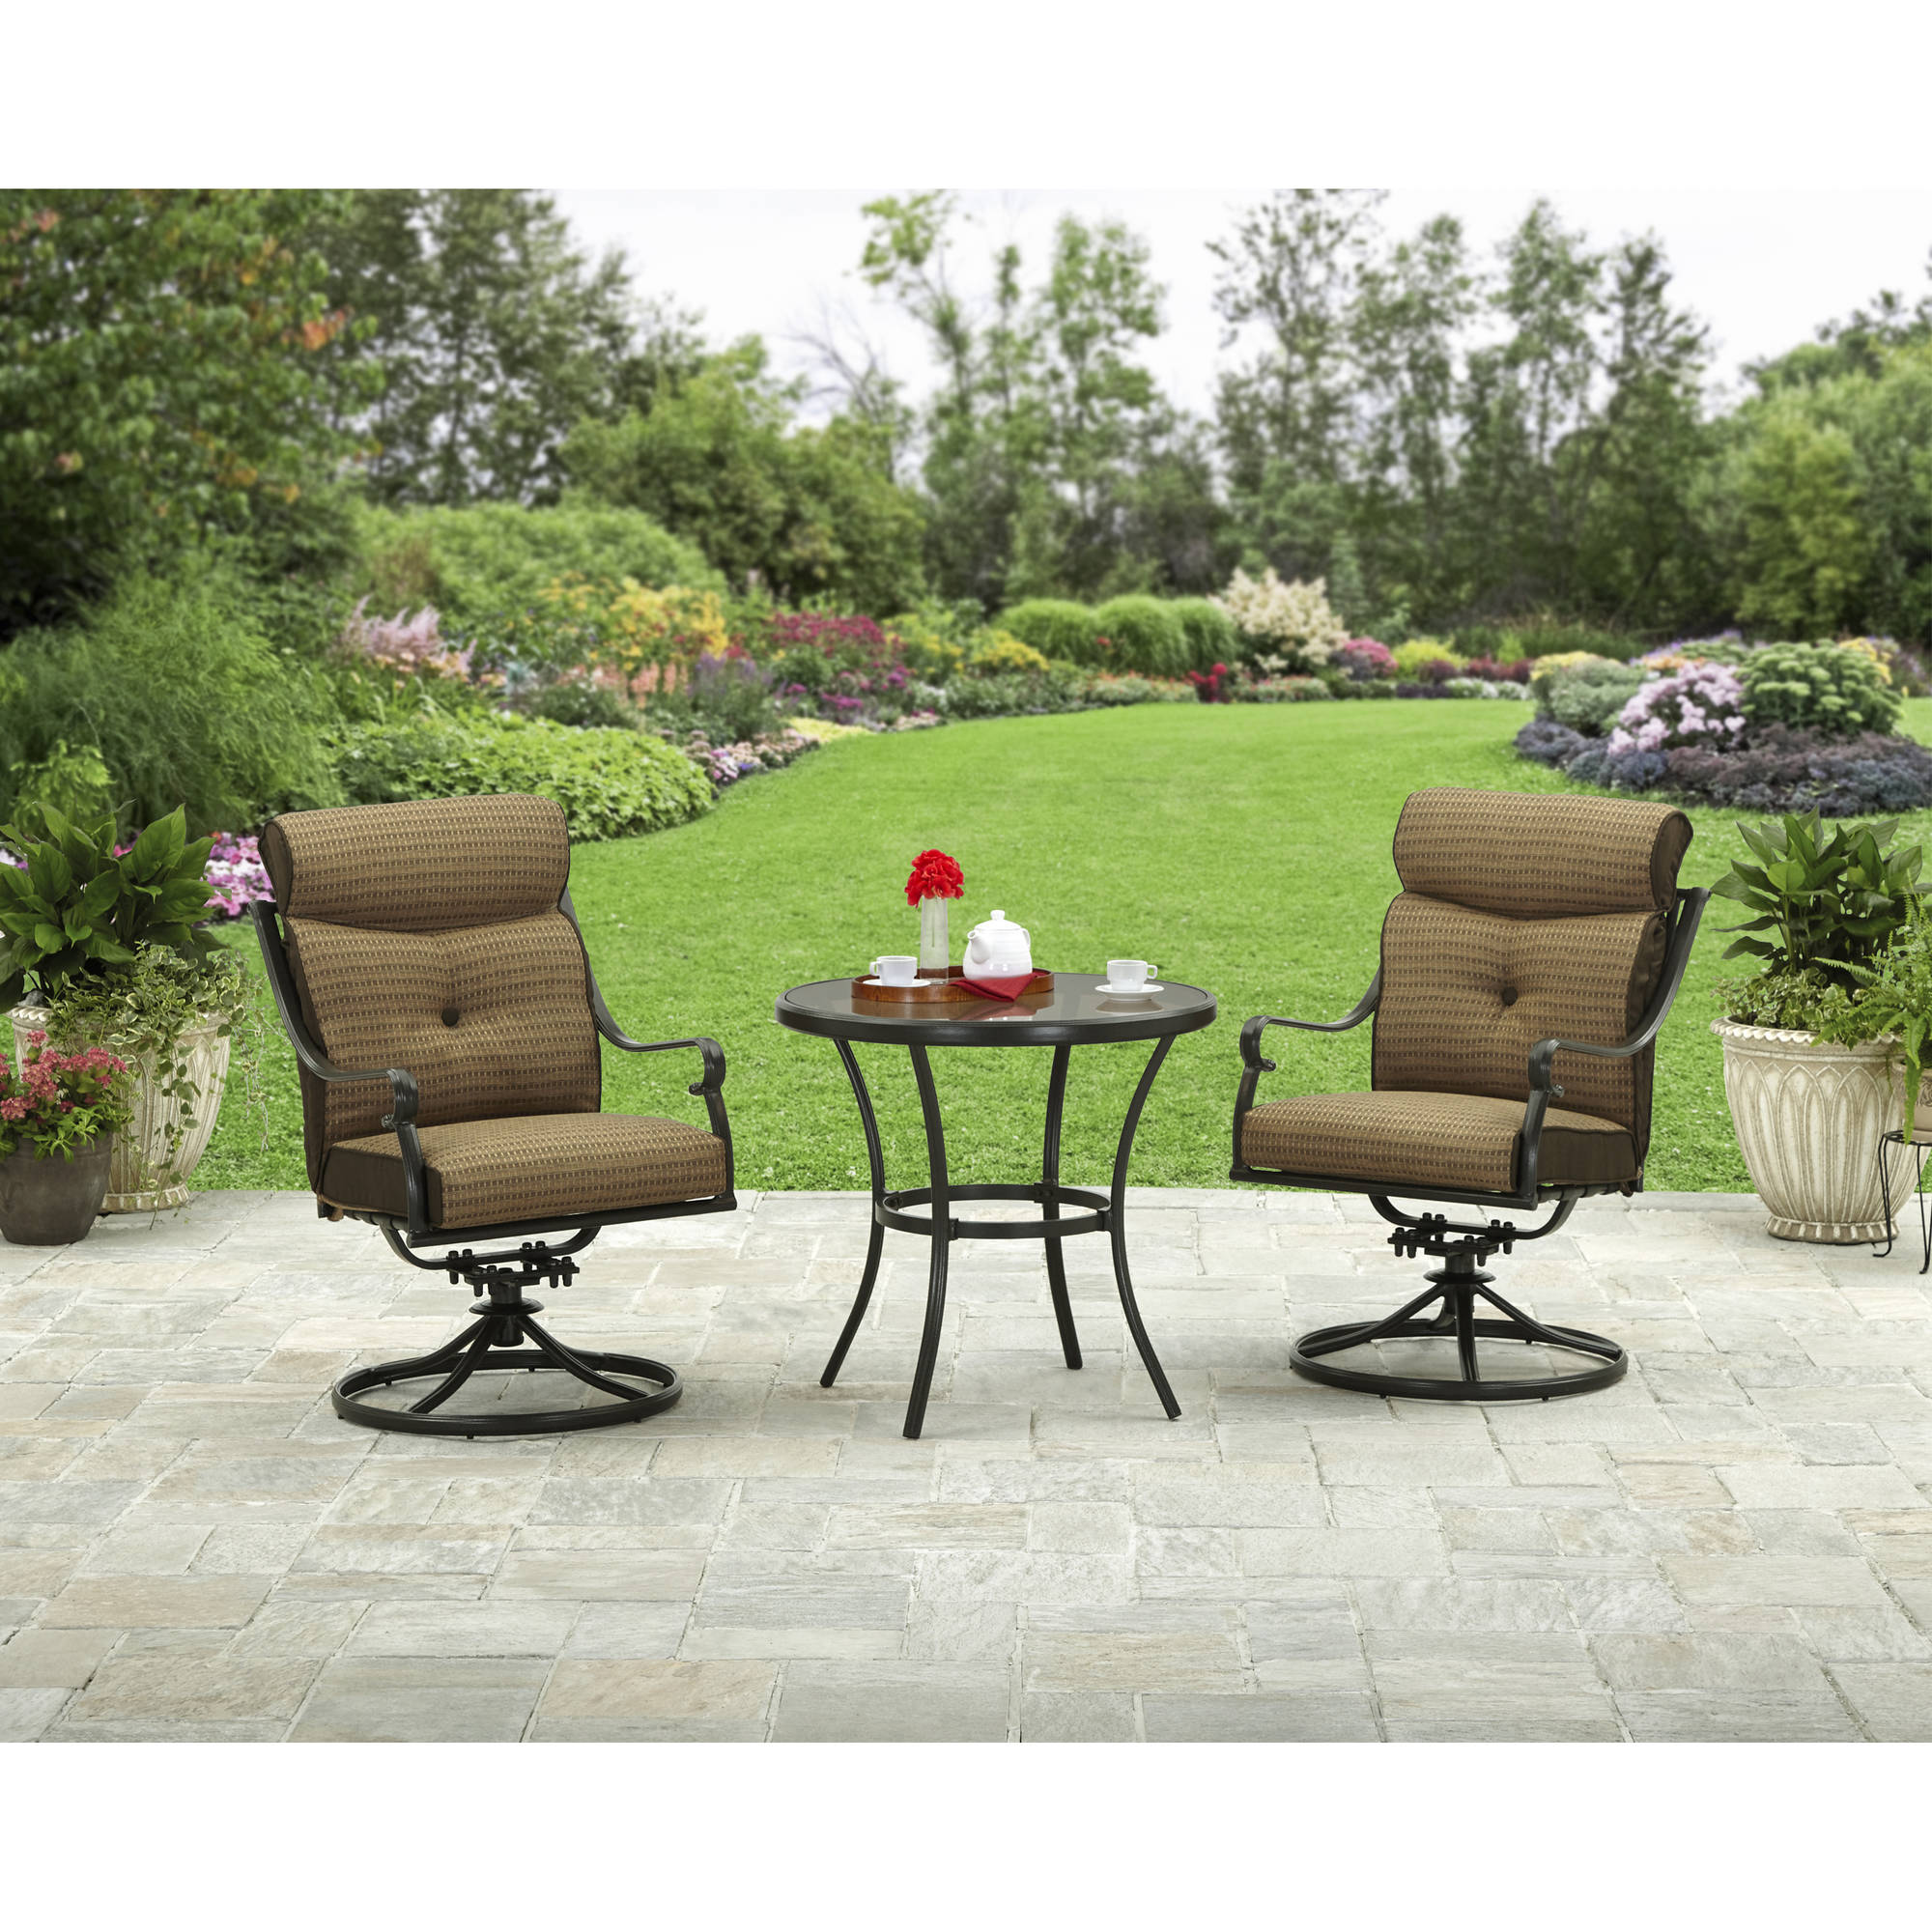 Metal Bistro Table And Chairs Better Homes And Gardens Bailey Ridge 3 Piece Outdoor Bistro Set